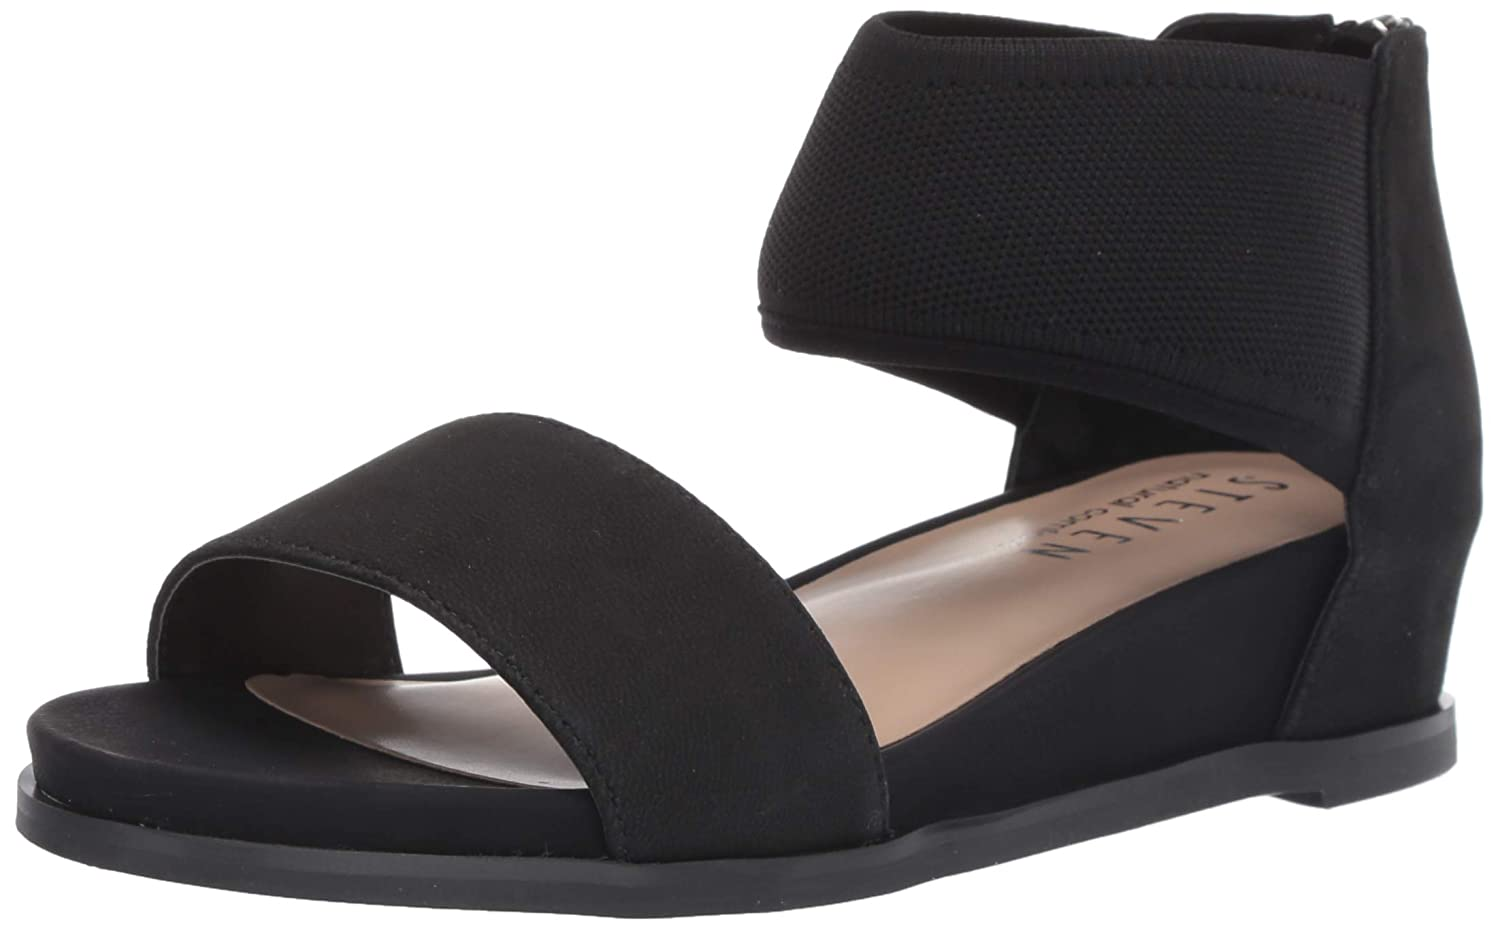 e0d3a0242c5 Amazon.com  STEVEN by Steve Madden Women s Nc-Evie Sandal  Shoes